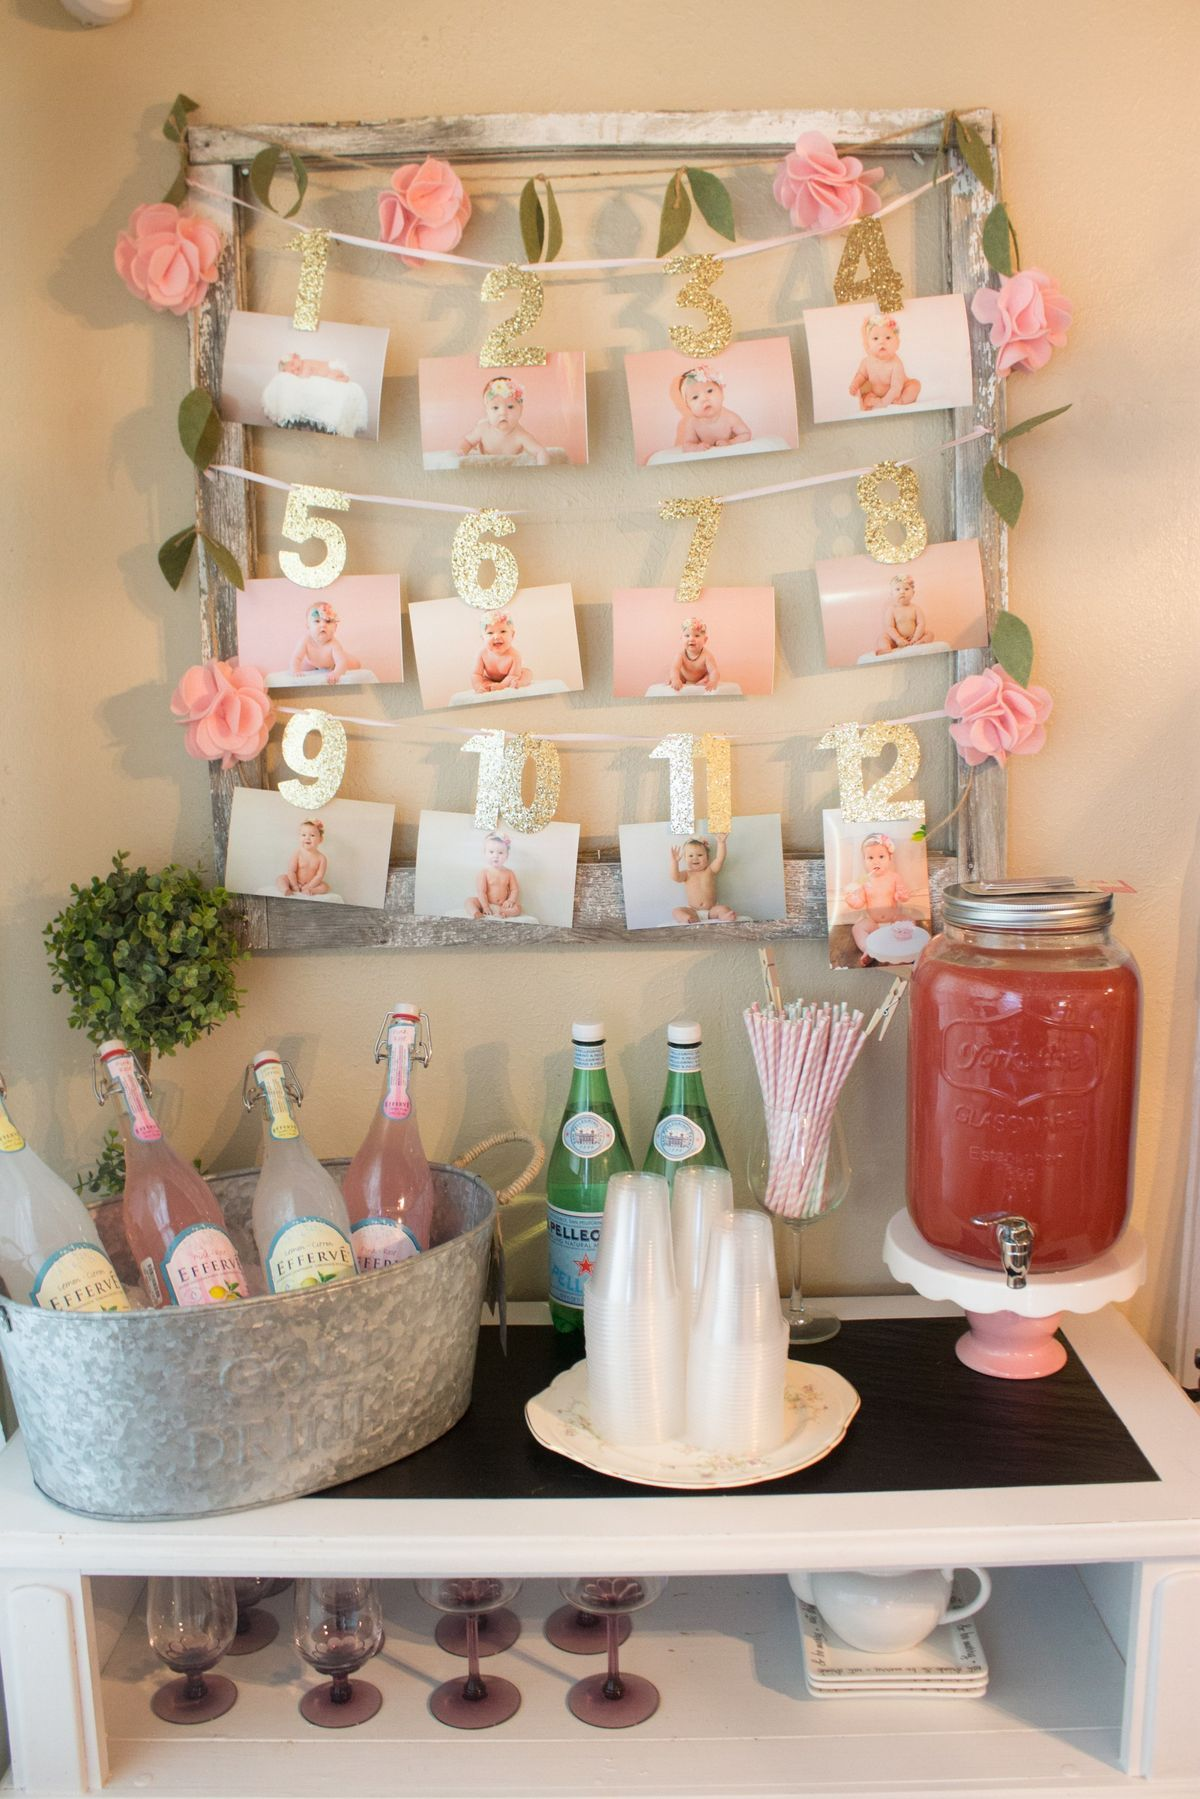 themes birthday:one year old baby birthday party ideas as well as 1